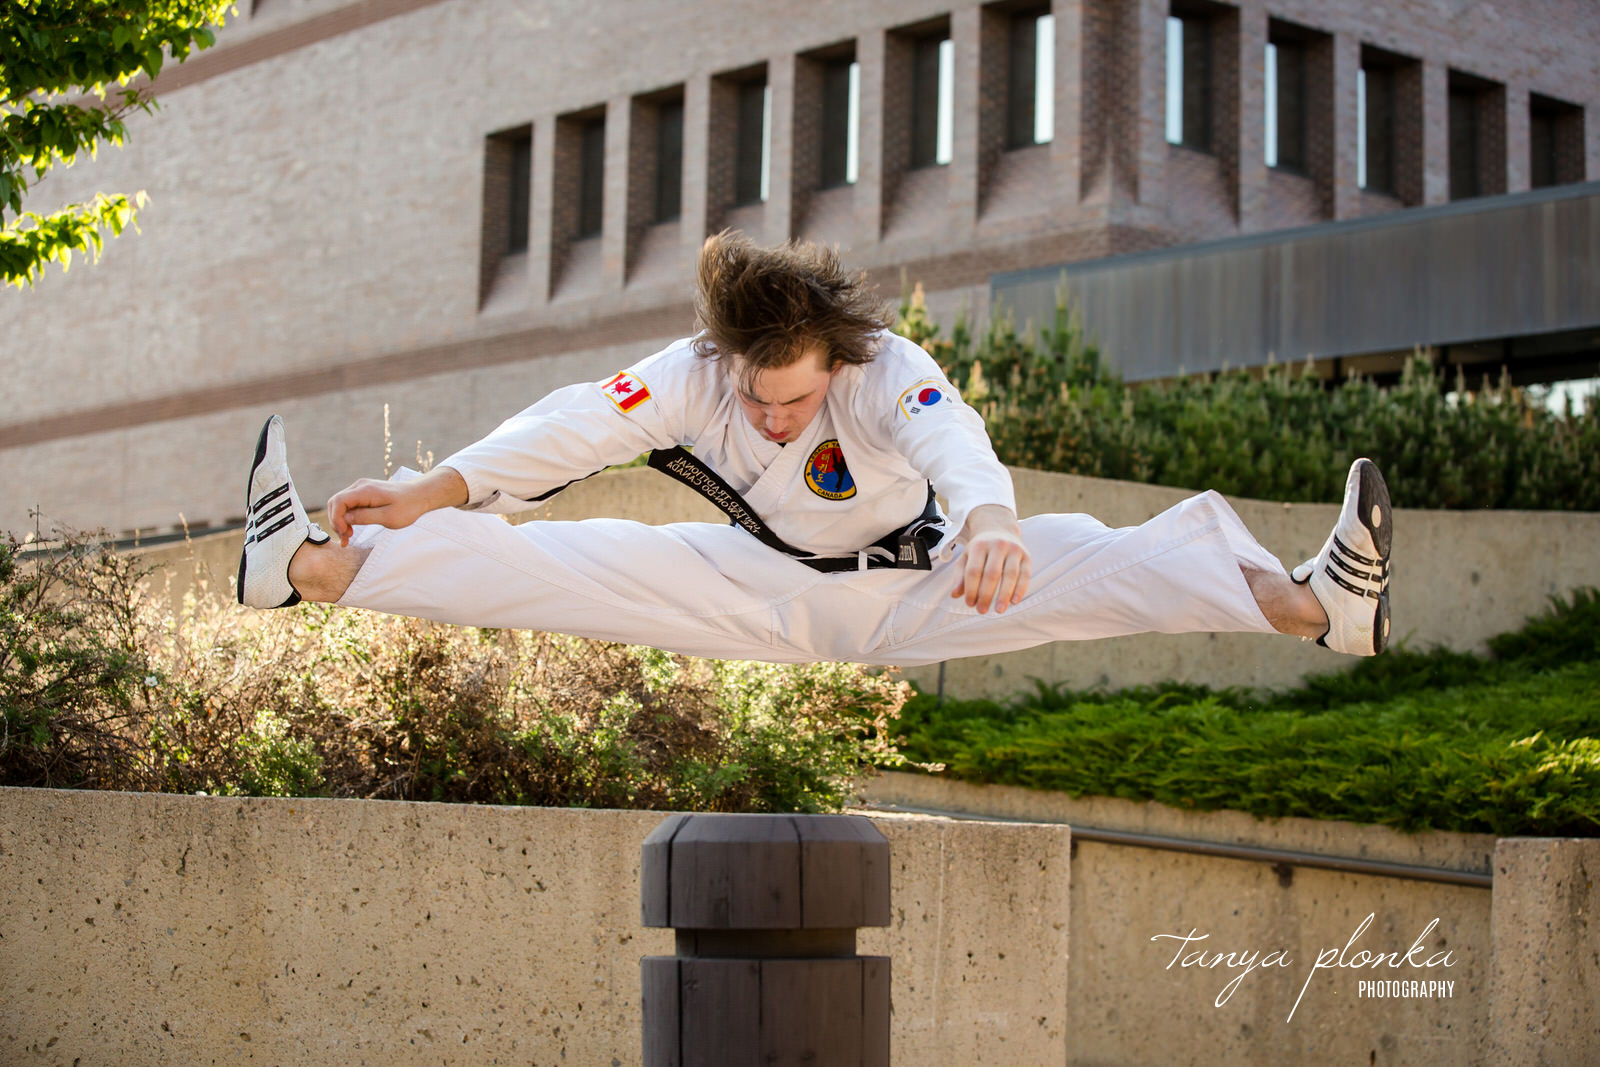 man in Tae Kwon Do uniform jumps over post in splits